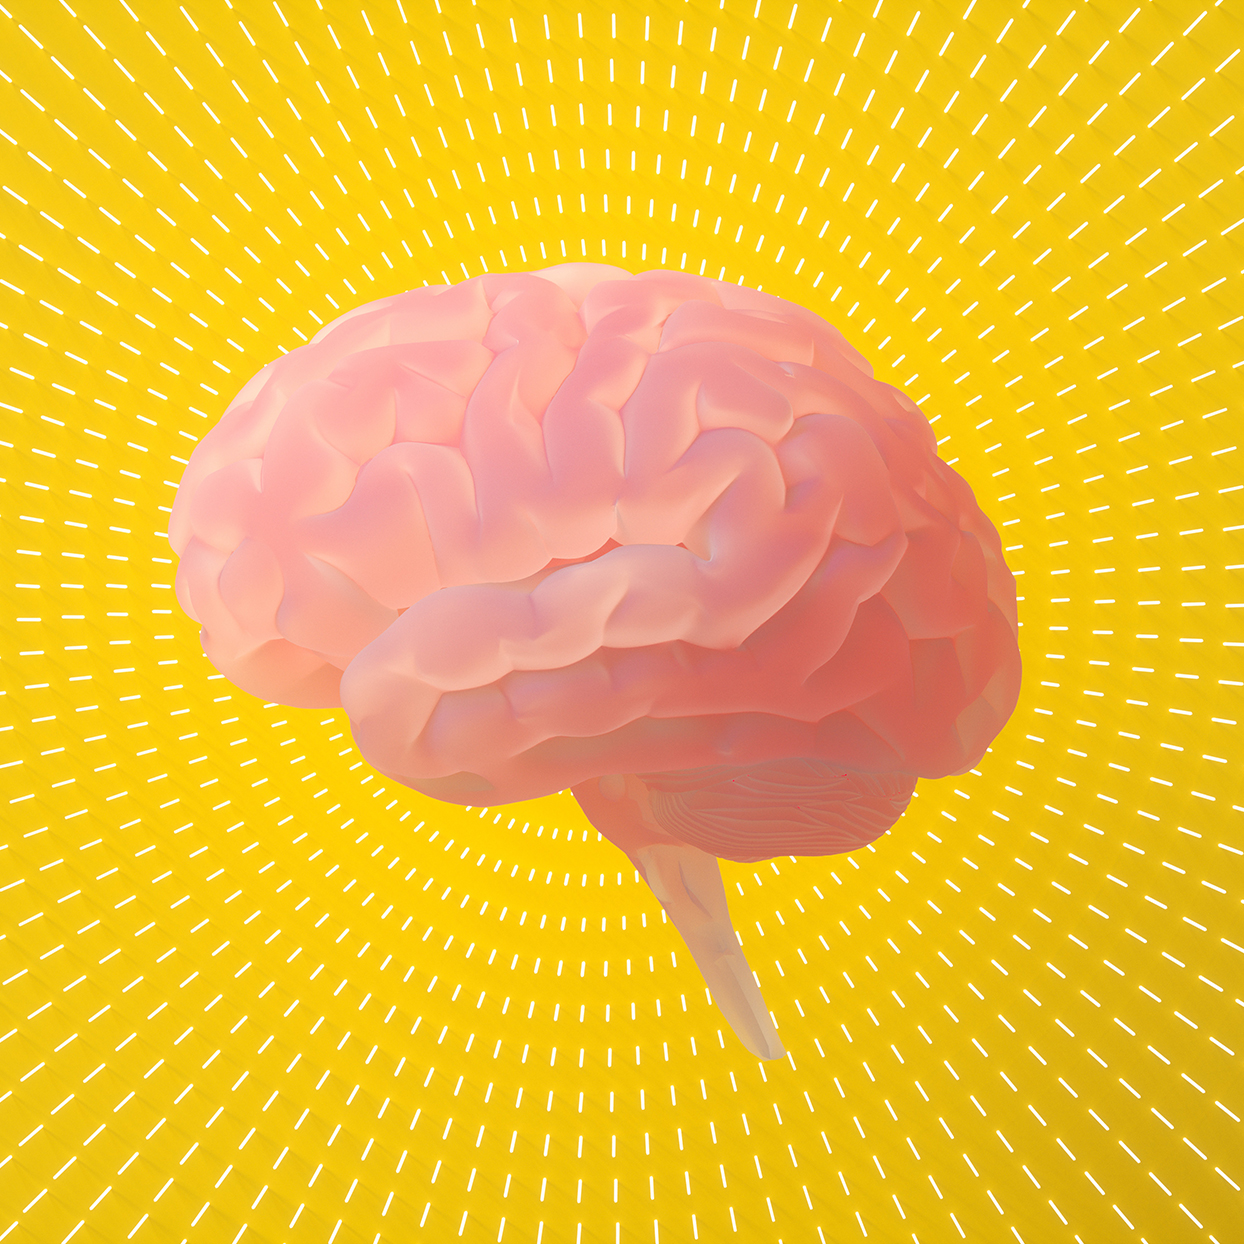 An illustration of a brain on a yellow background